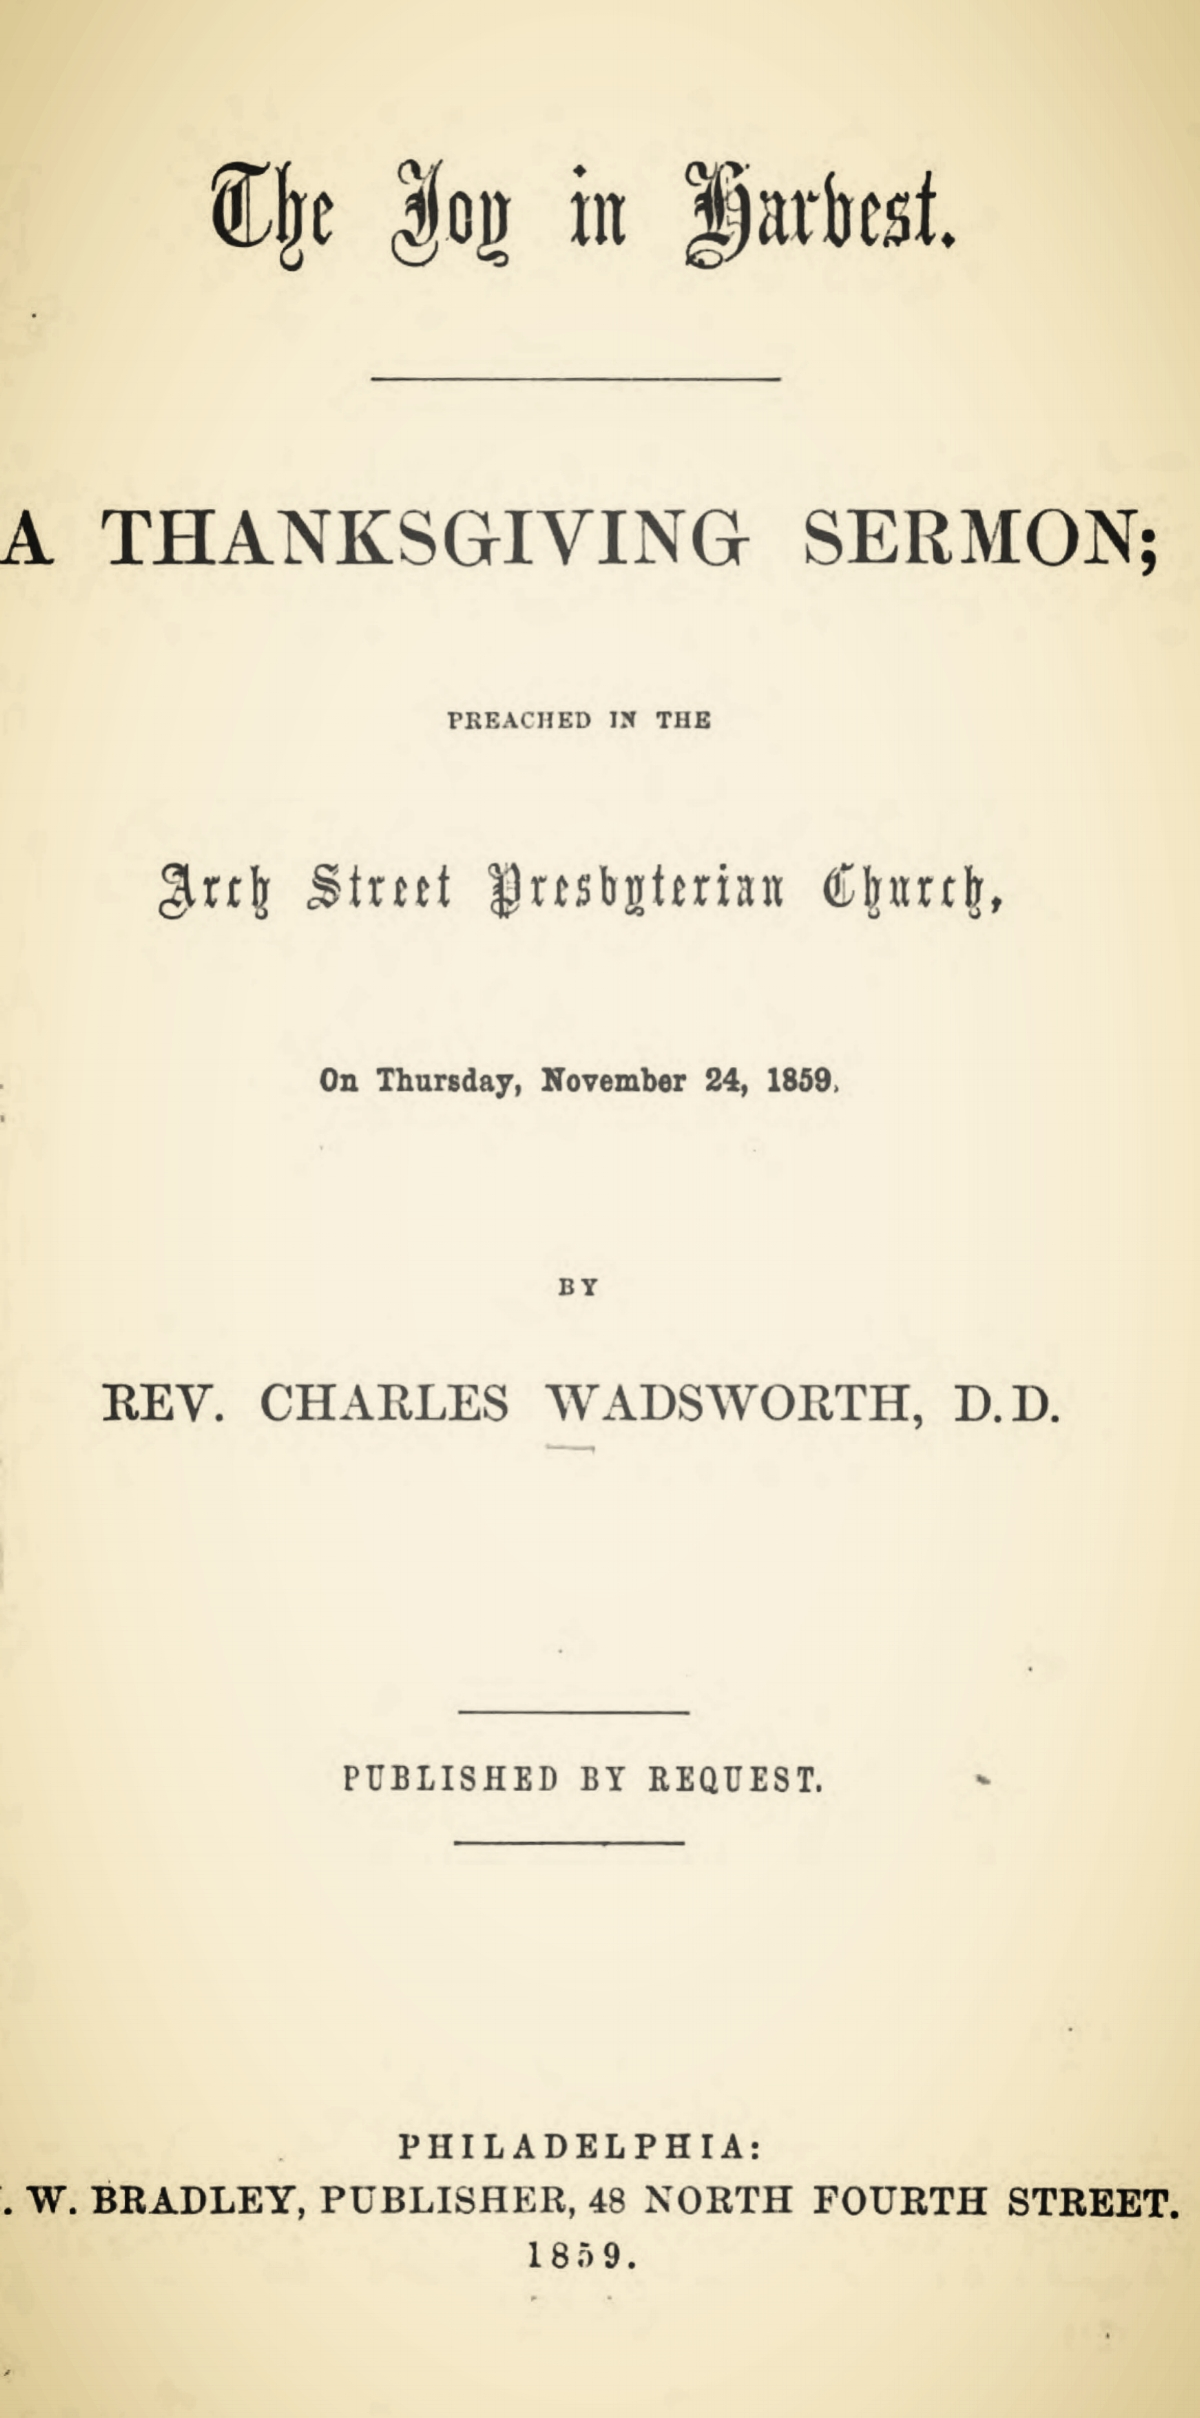 Wadsworth, Charles, The Joy in Harvest Title Page.jpg